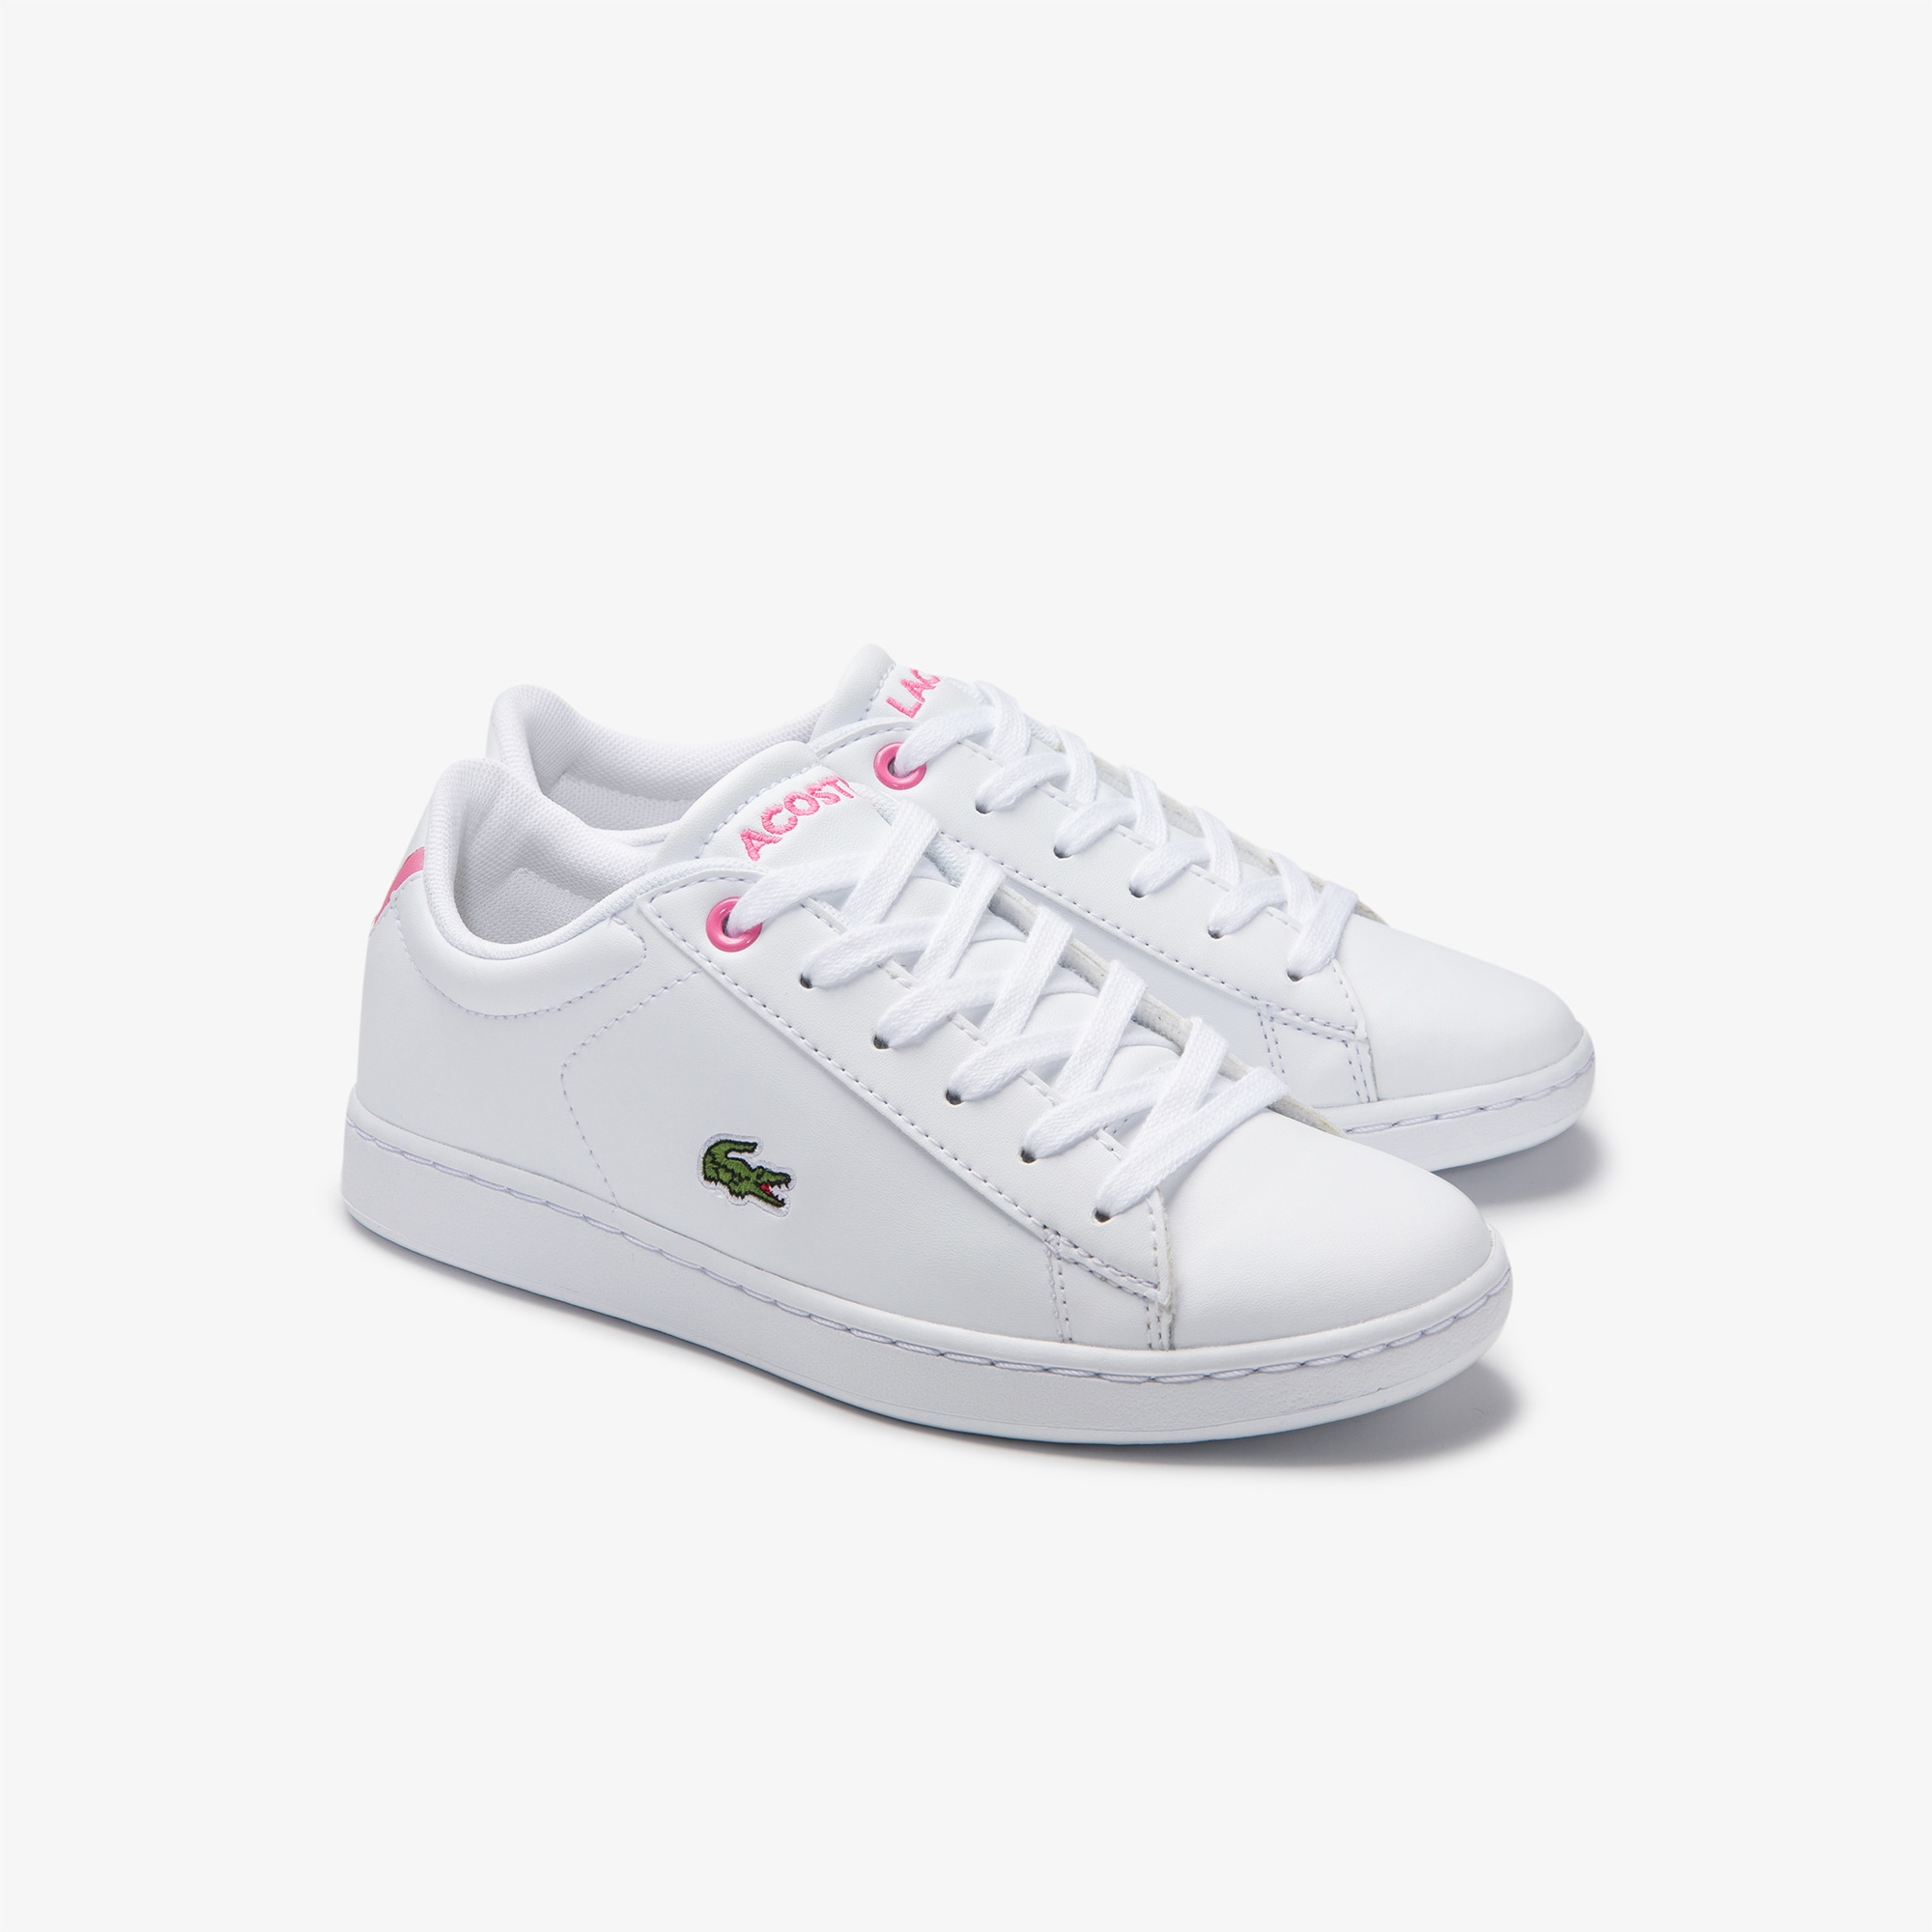 Children's Carnaby Evo Trainers with Green Croc